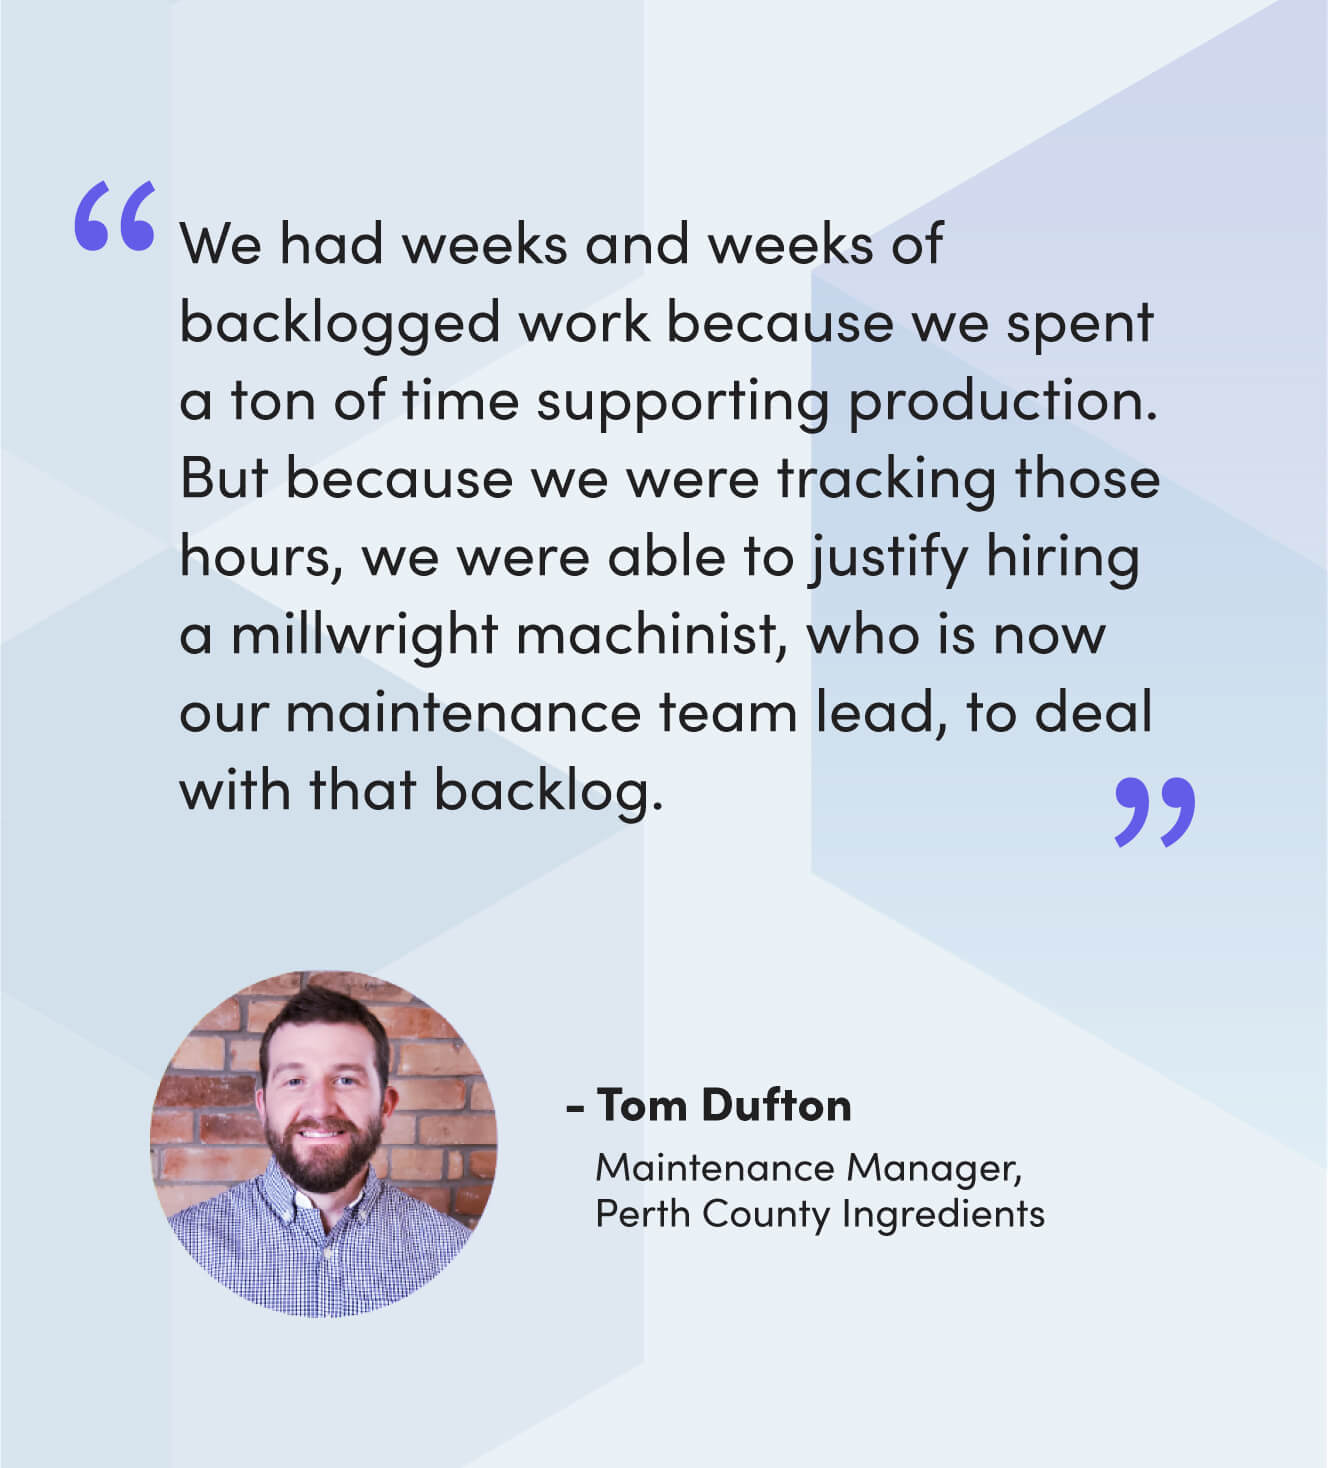 """""""We had weeks and weeks of backlogged work because we spent a ton of time supporting production. But because we were tracking those hours, we were able to justify hiring a millwright machinist, who is now our maintenance team lead, to deal with that backlog."""" - Tom Dufton, Maintenance Manager, Perth County Ingredients"""